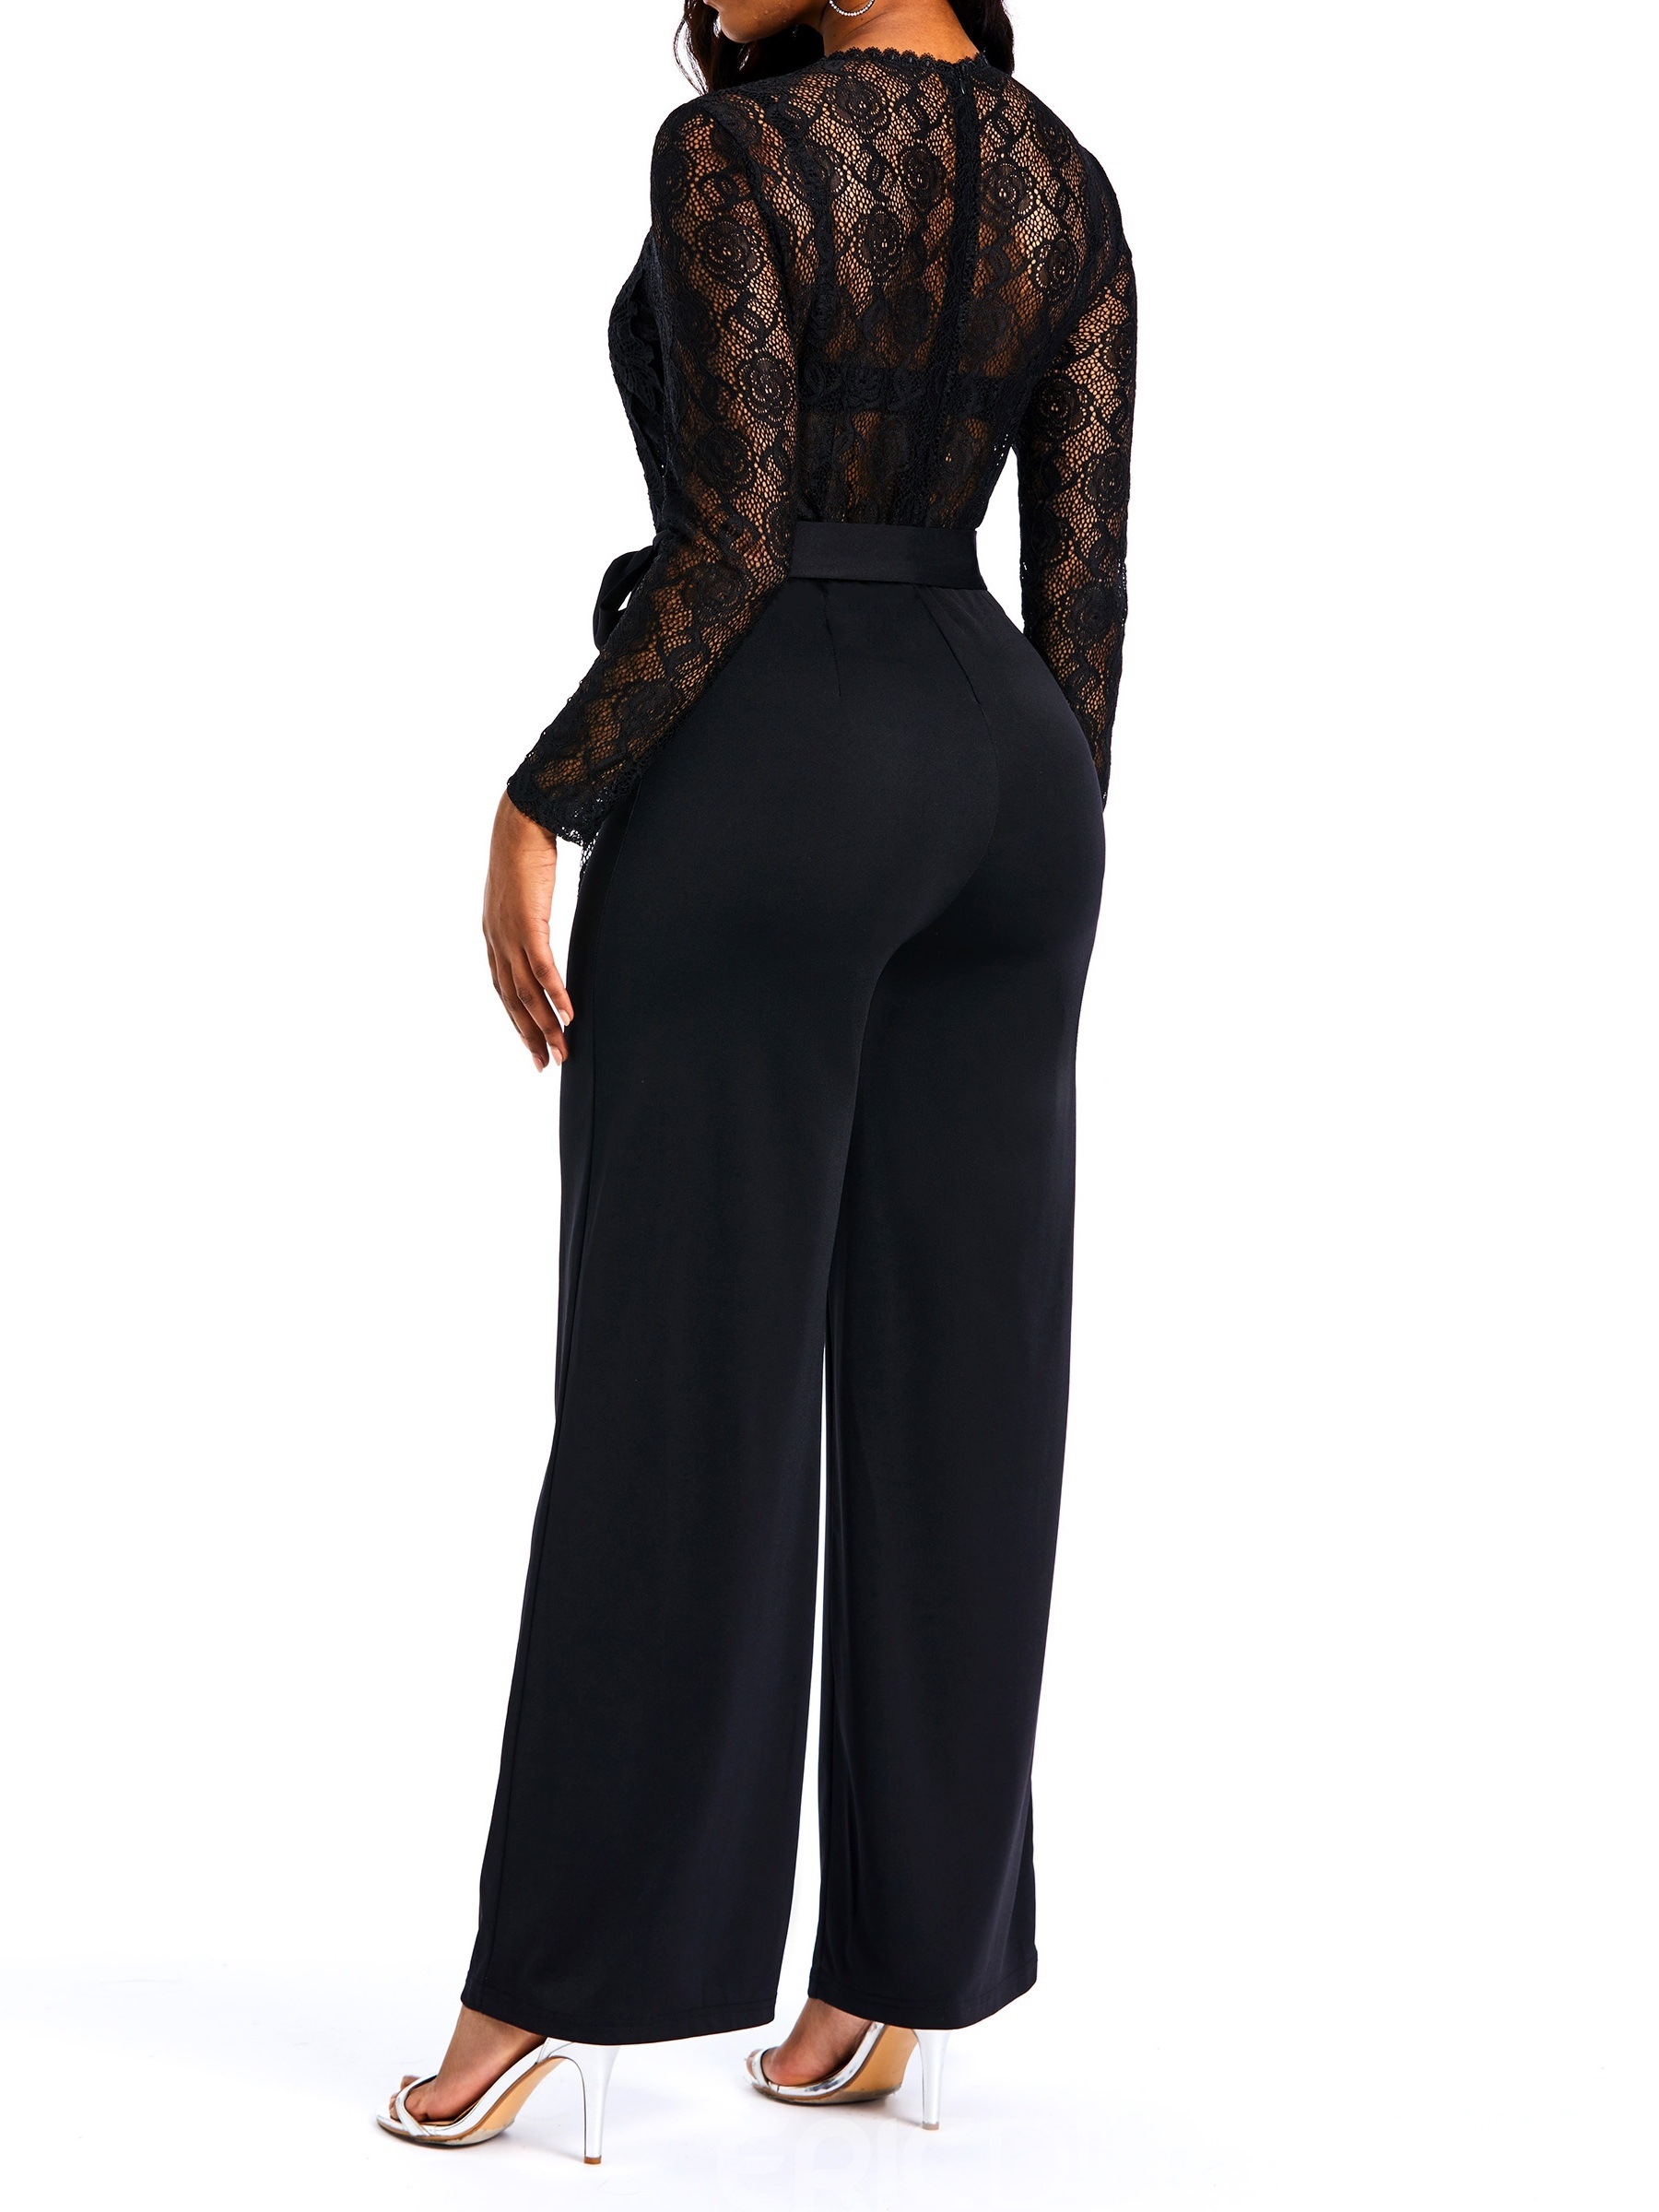 Ericdress See-Through Lace Patchwork Fashion Wide Legs Jumpsuits